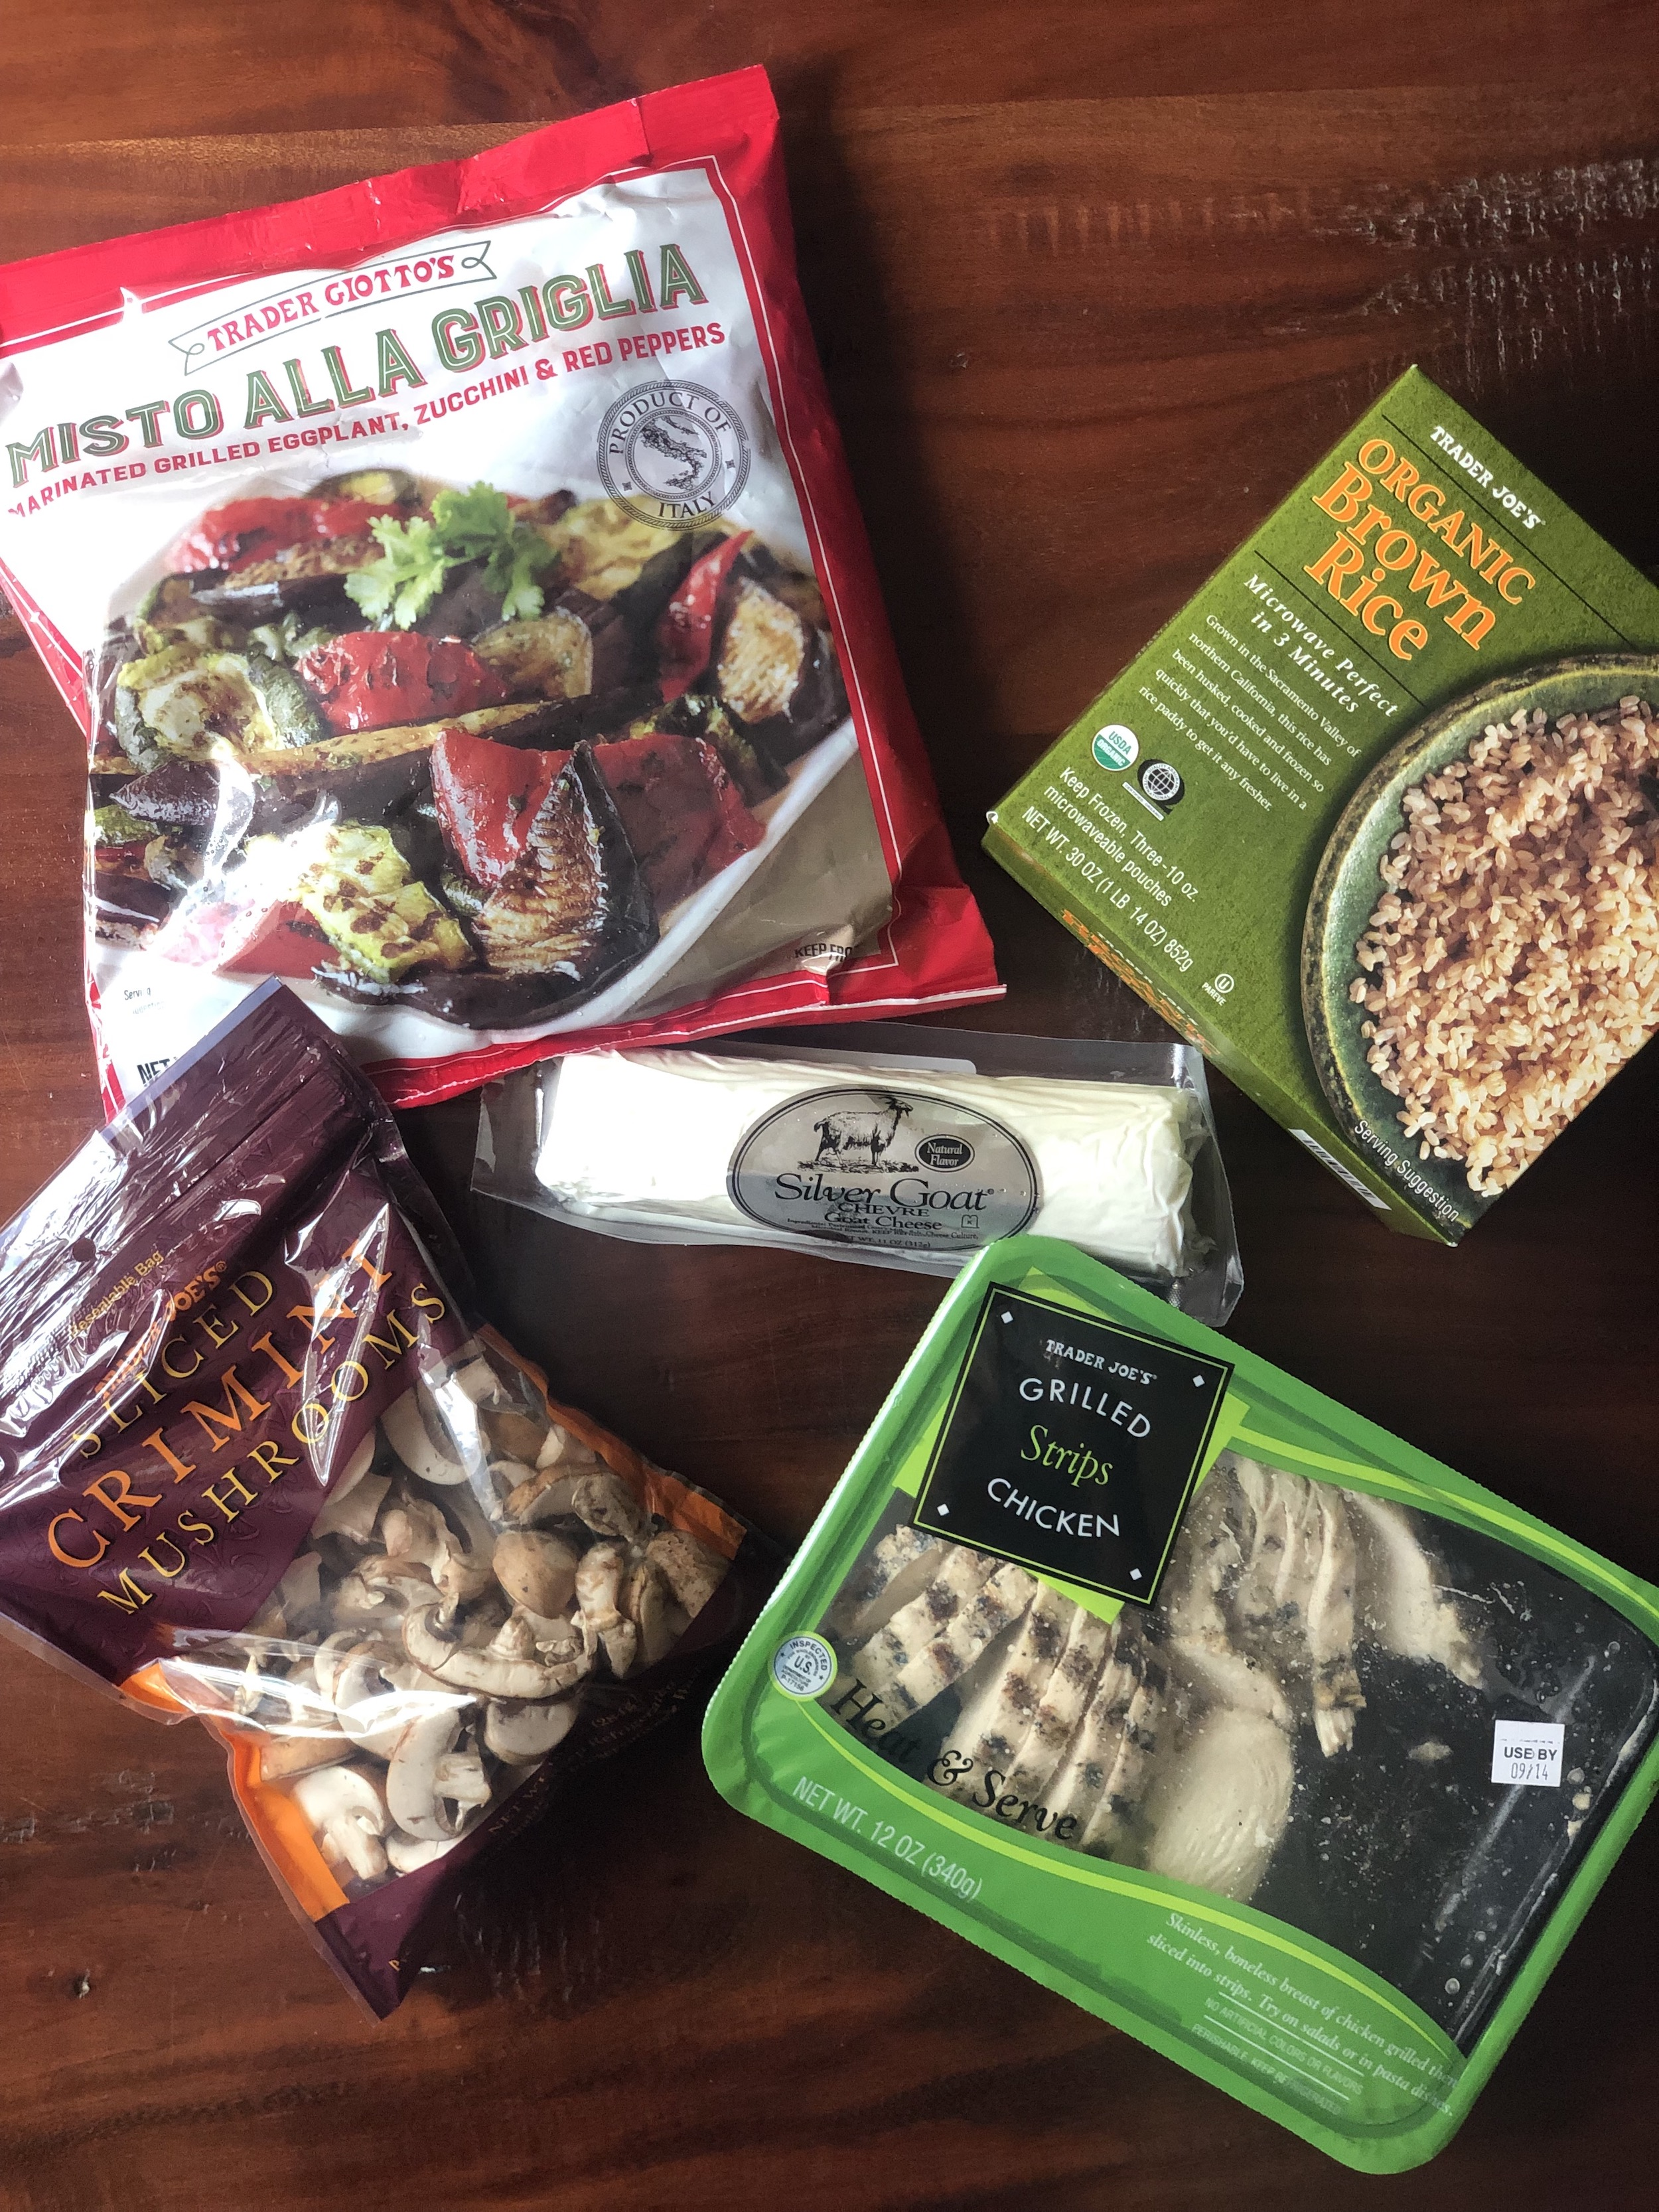 Healthy Eating at Trader Joes | Creamy Chicken and Vegetable Stir-Fry | Ingredients